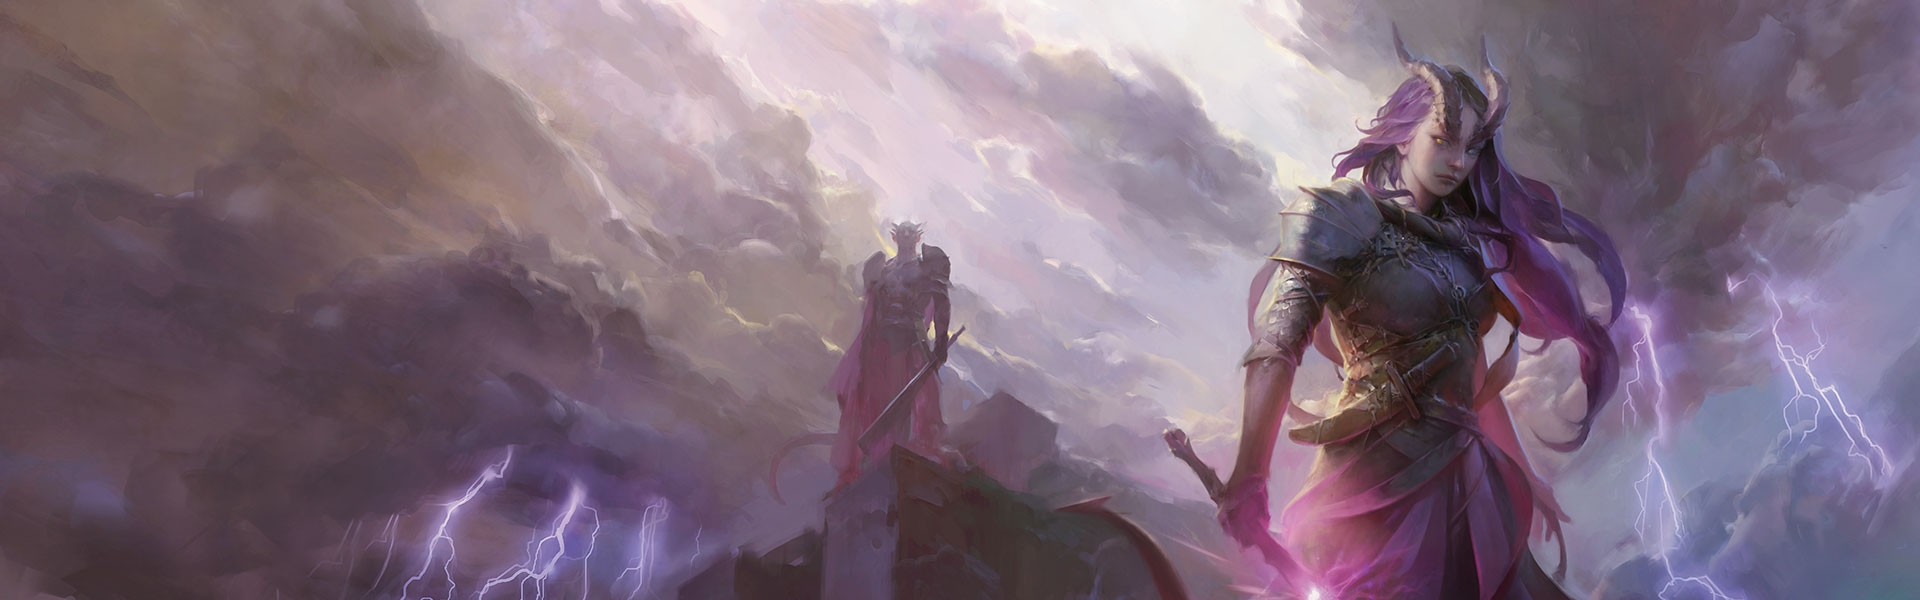 AshesofTyrant_Header